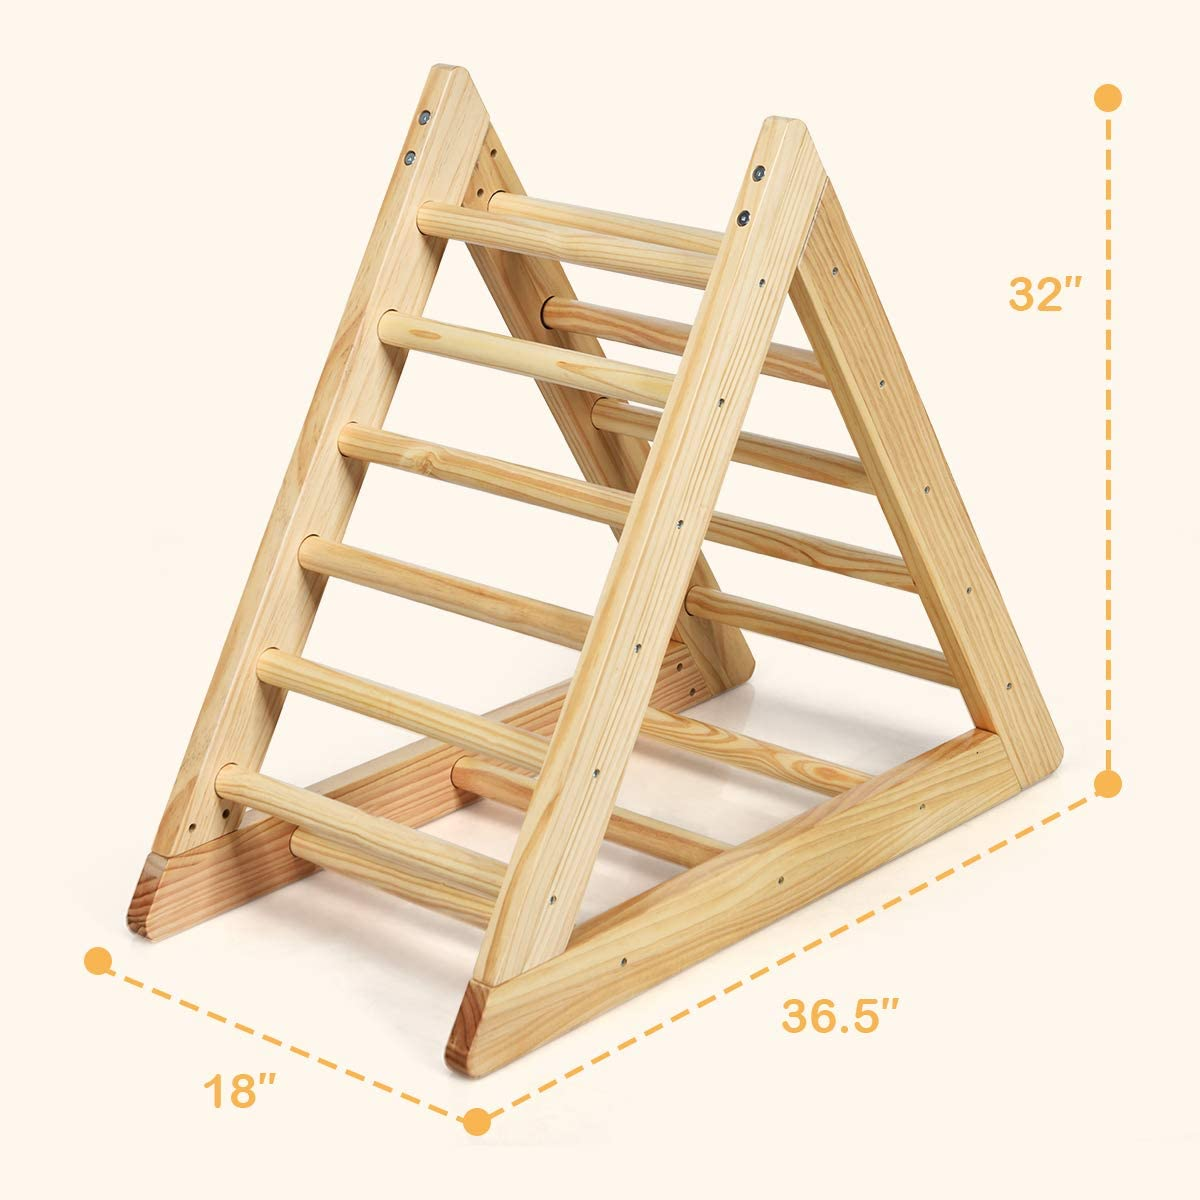 GLACER Wooden Climbing Triangle Ladder Toddler Triangle Climber with 3 Different Climbing Ladders for Kids 3 Years Old+ Indoor Playful Climbers to Develop Strength Balance and Motor Skills